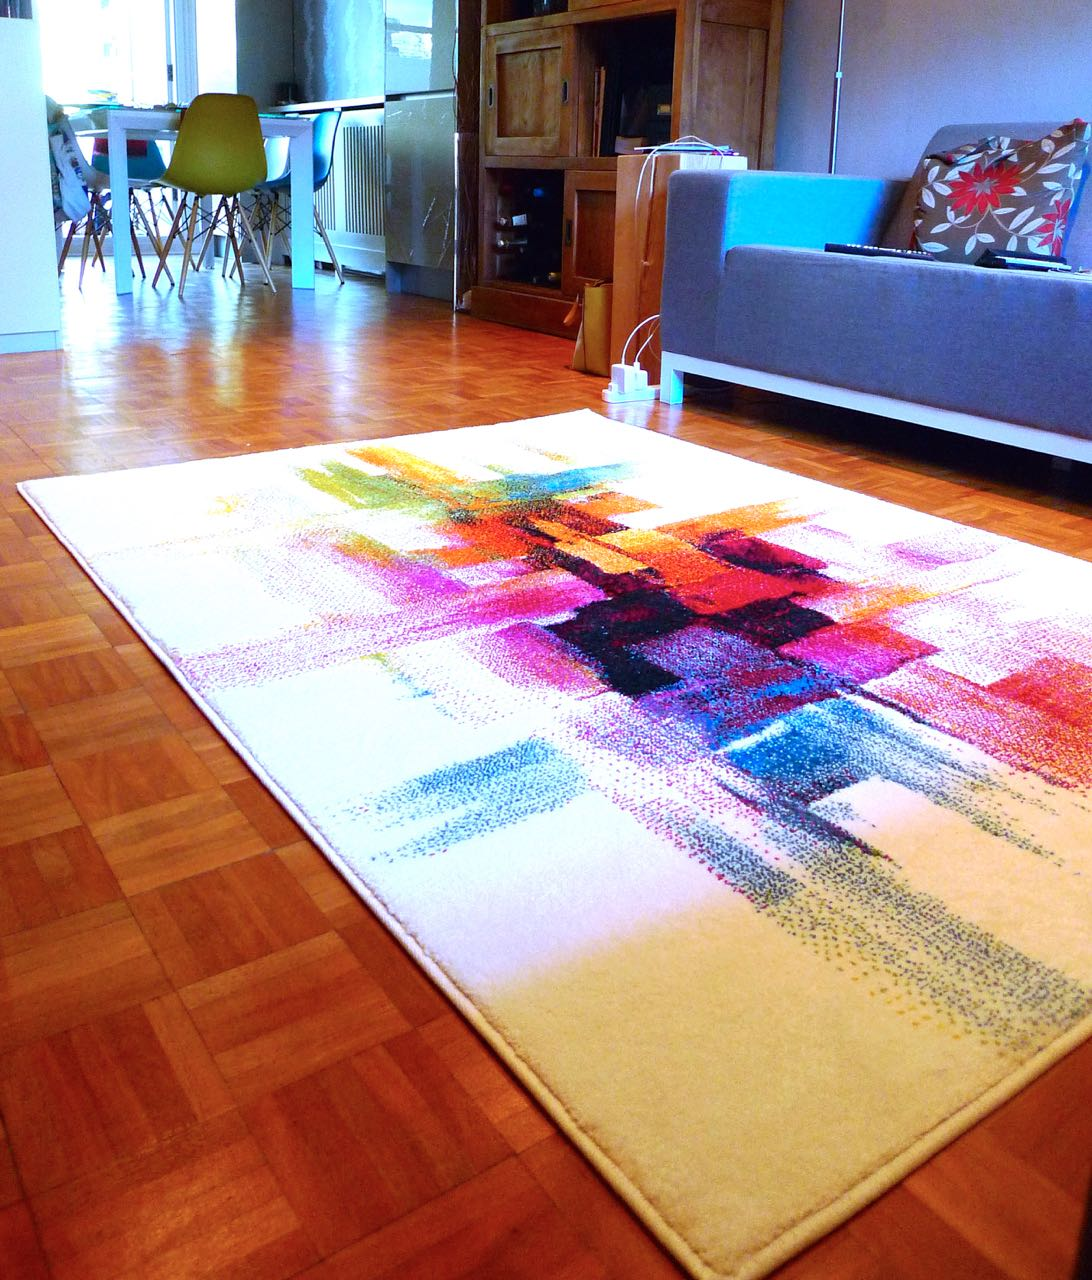 Using the Impressionist rug to tie living spaces together